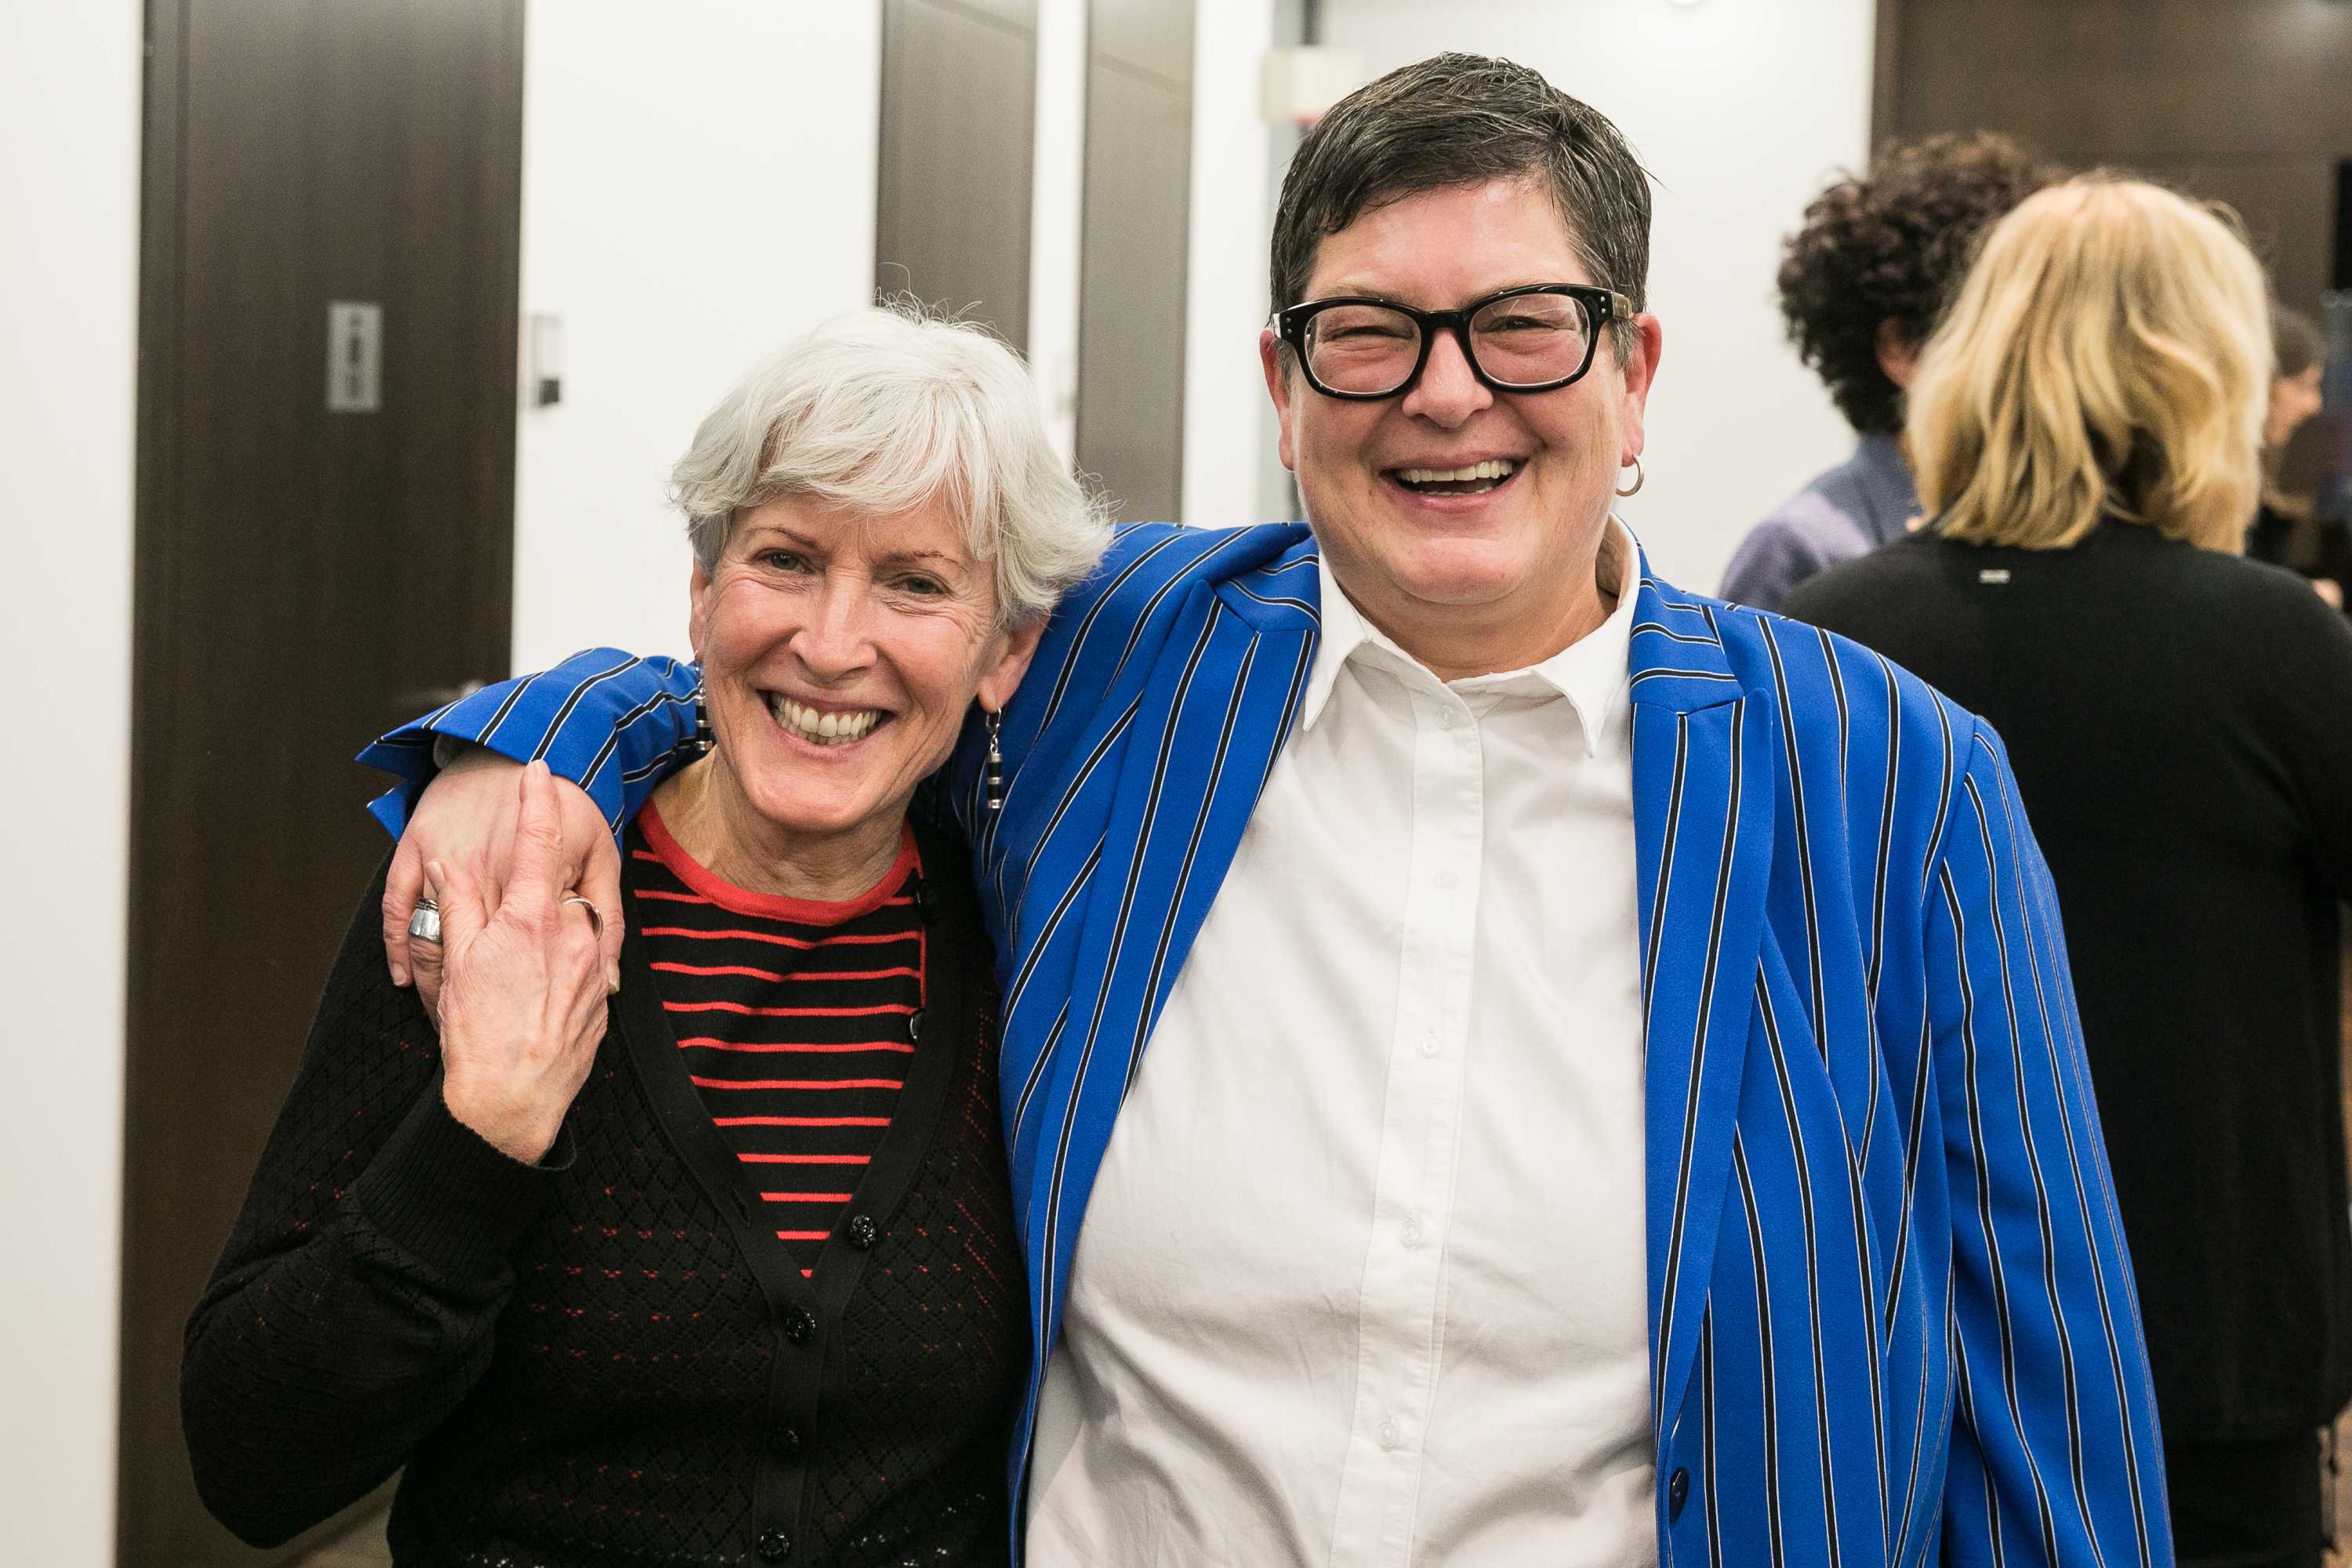 037 Gender Award 2019 Roswitha Bocklage und Heike Gerstenberger BAG Bundessprecherinnen